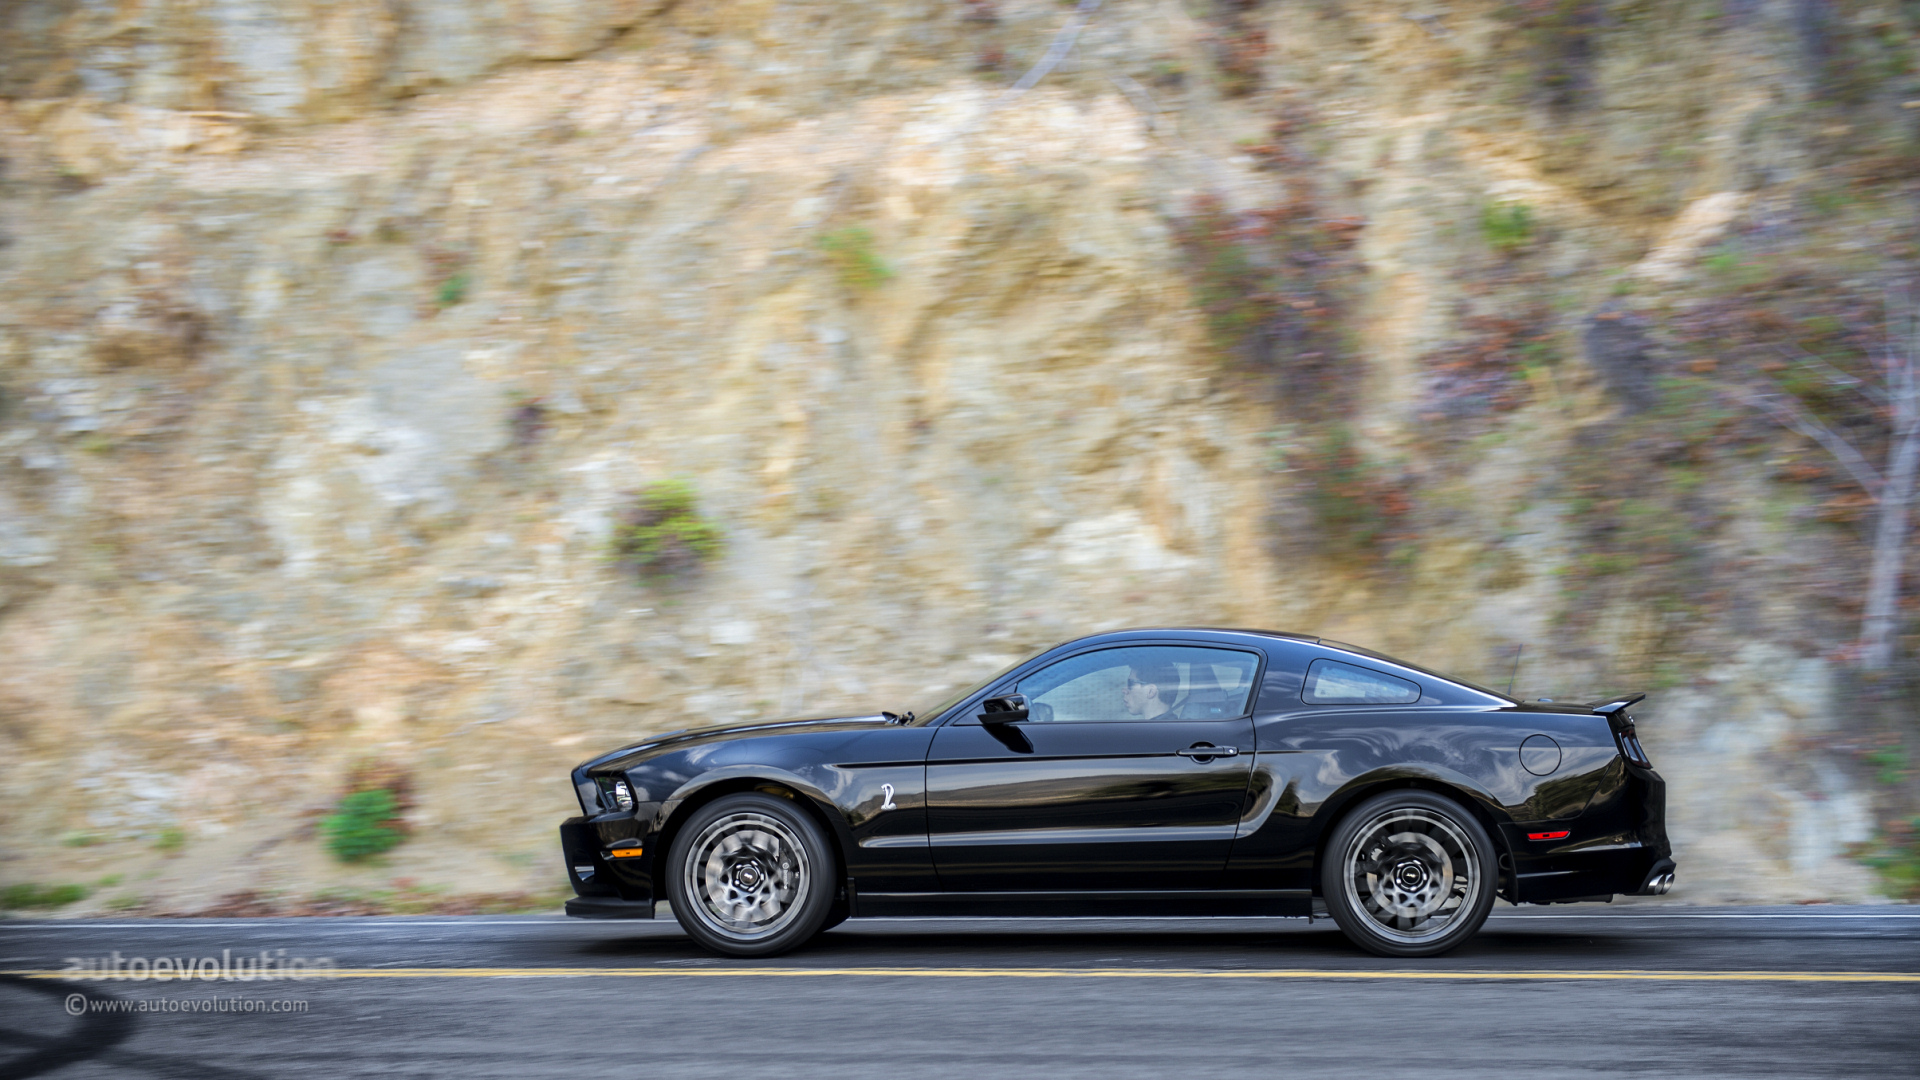 2014 Ford Mustang Shelby GT500 photo gallery (56 pictures)